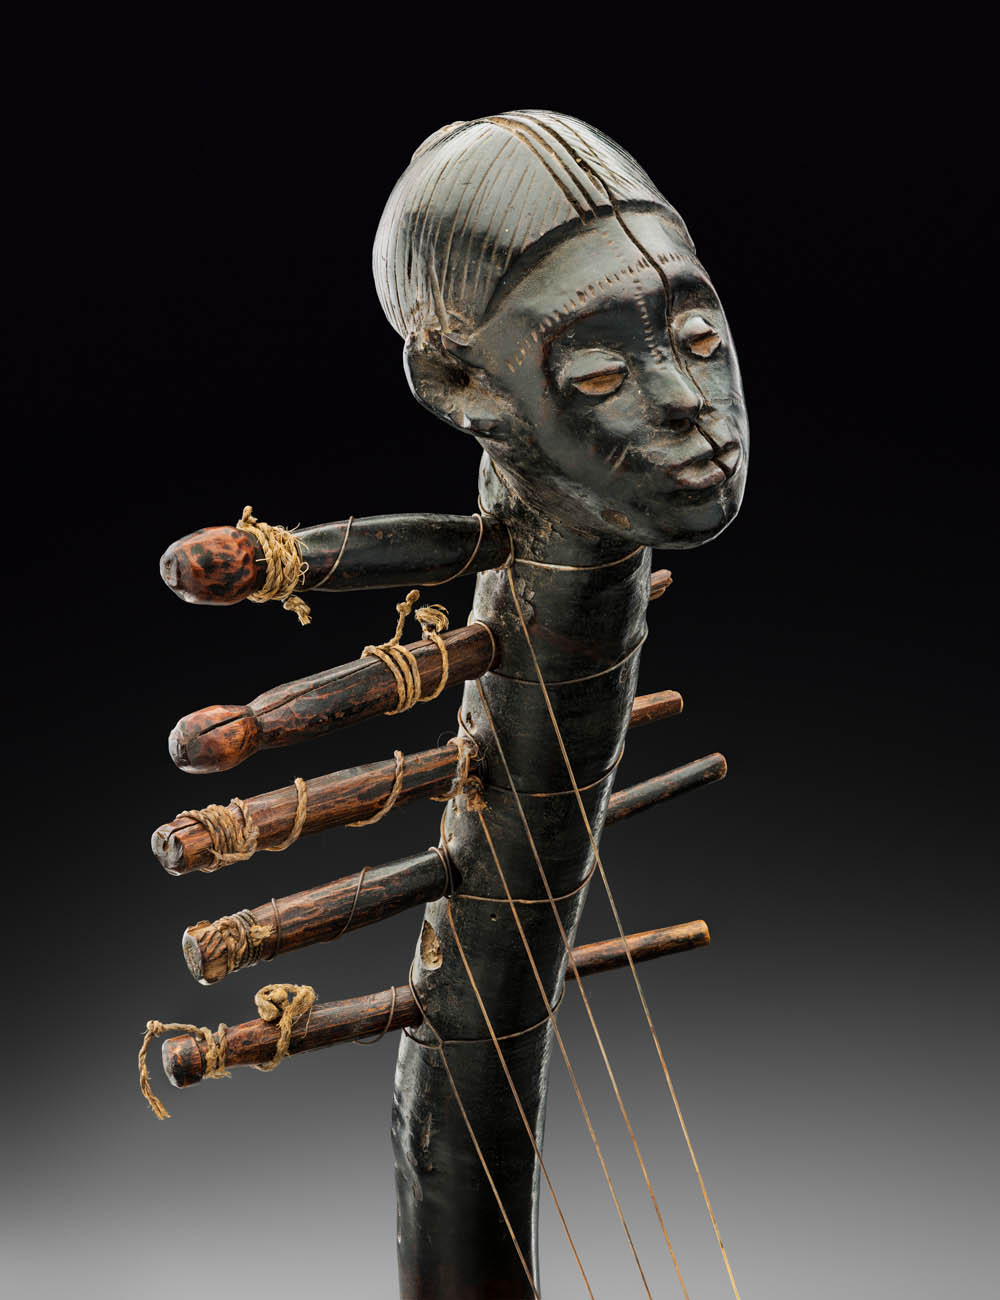 BRAFA, Claes Gallery, Zande harp, Democratic of the Congo